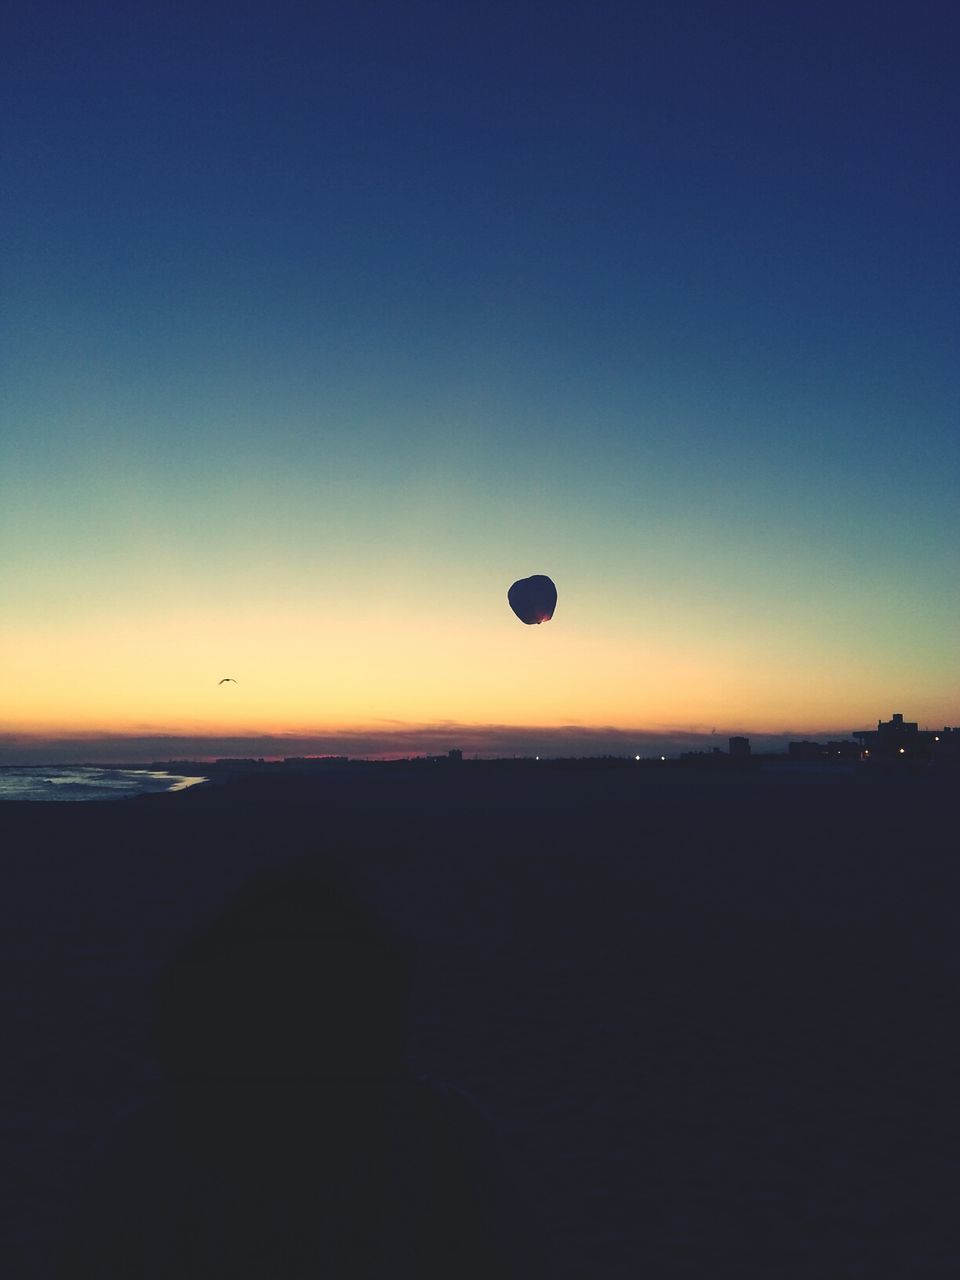 sunset, silhouette, hot air balloon, tranquil scene, nature, beauty in nature, scenics, tranquility, mid-air, outdoors, landscape, sky, no people, flying, clear sky, day